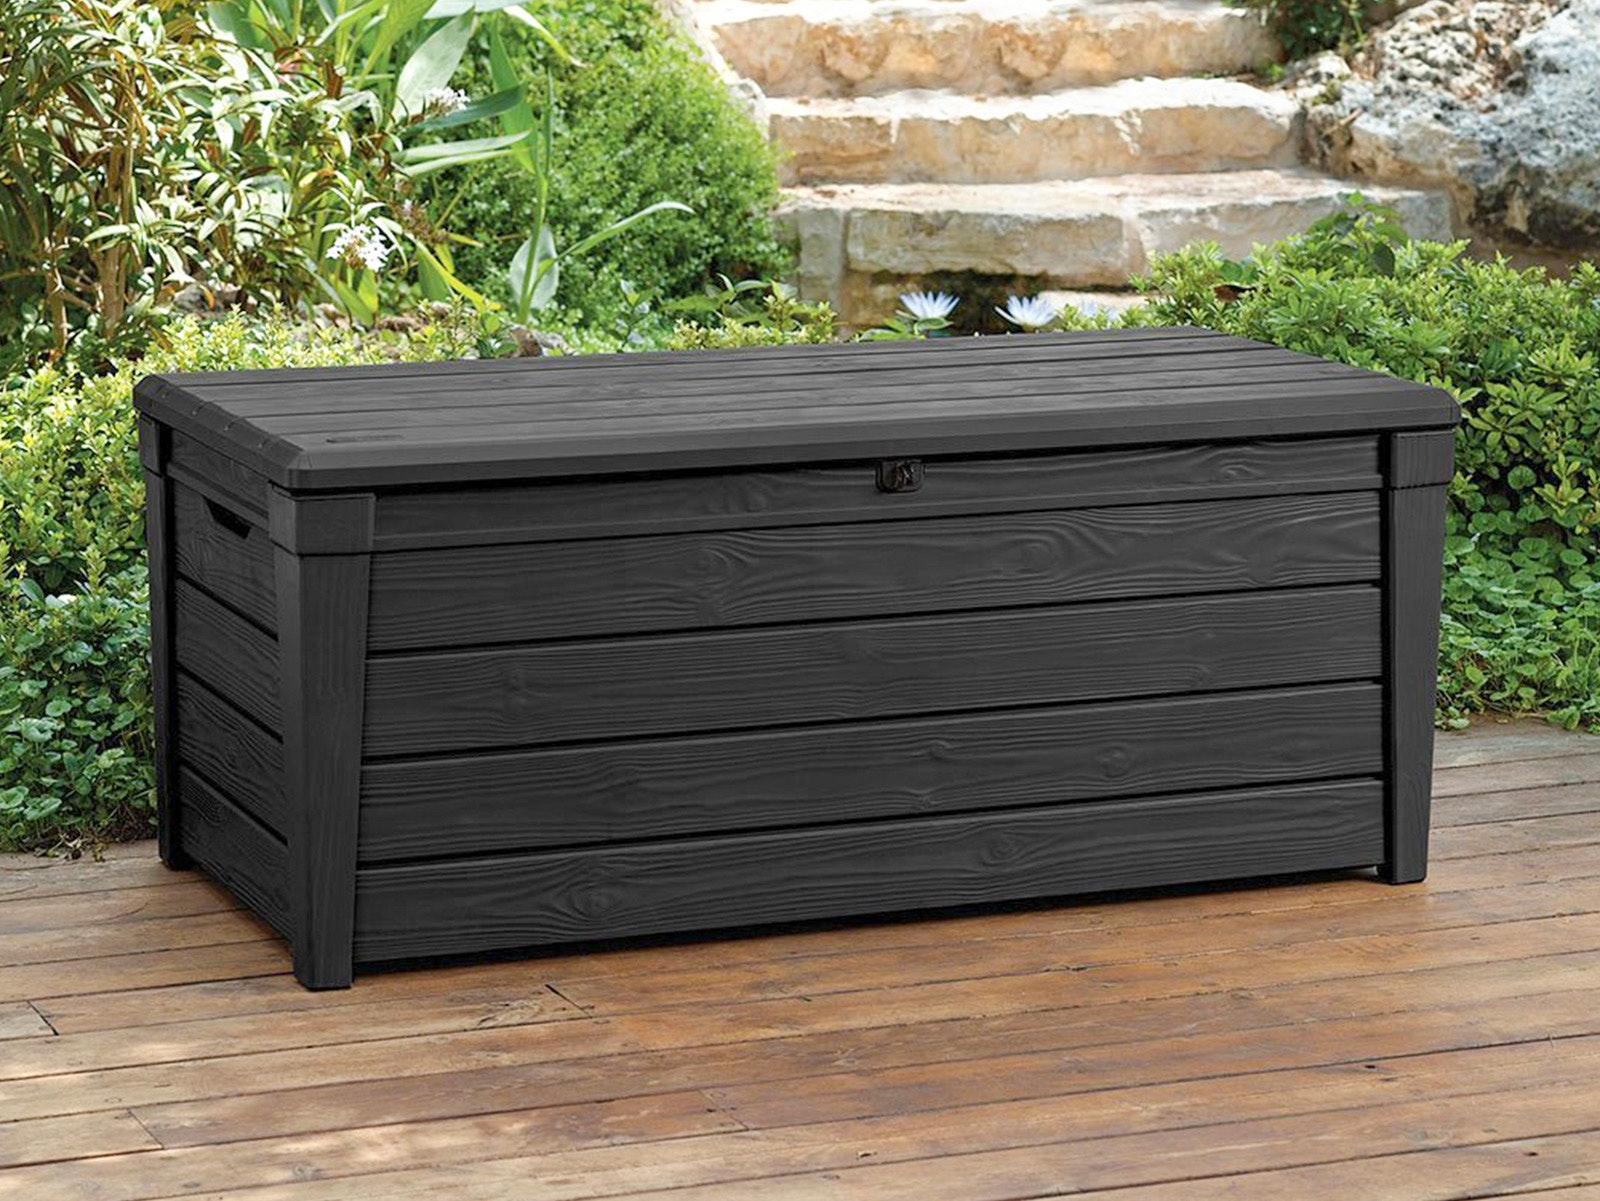 Image of: Keter Brightwood Outdoor Storage Box 454l Storage Boxes Outdoor Furniture Home Outdoor Living Trade Tested